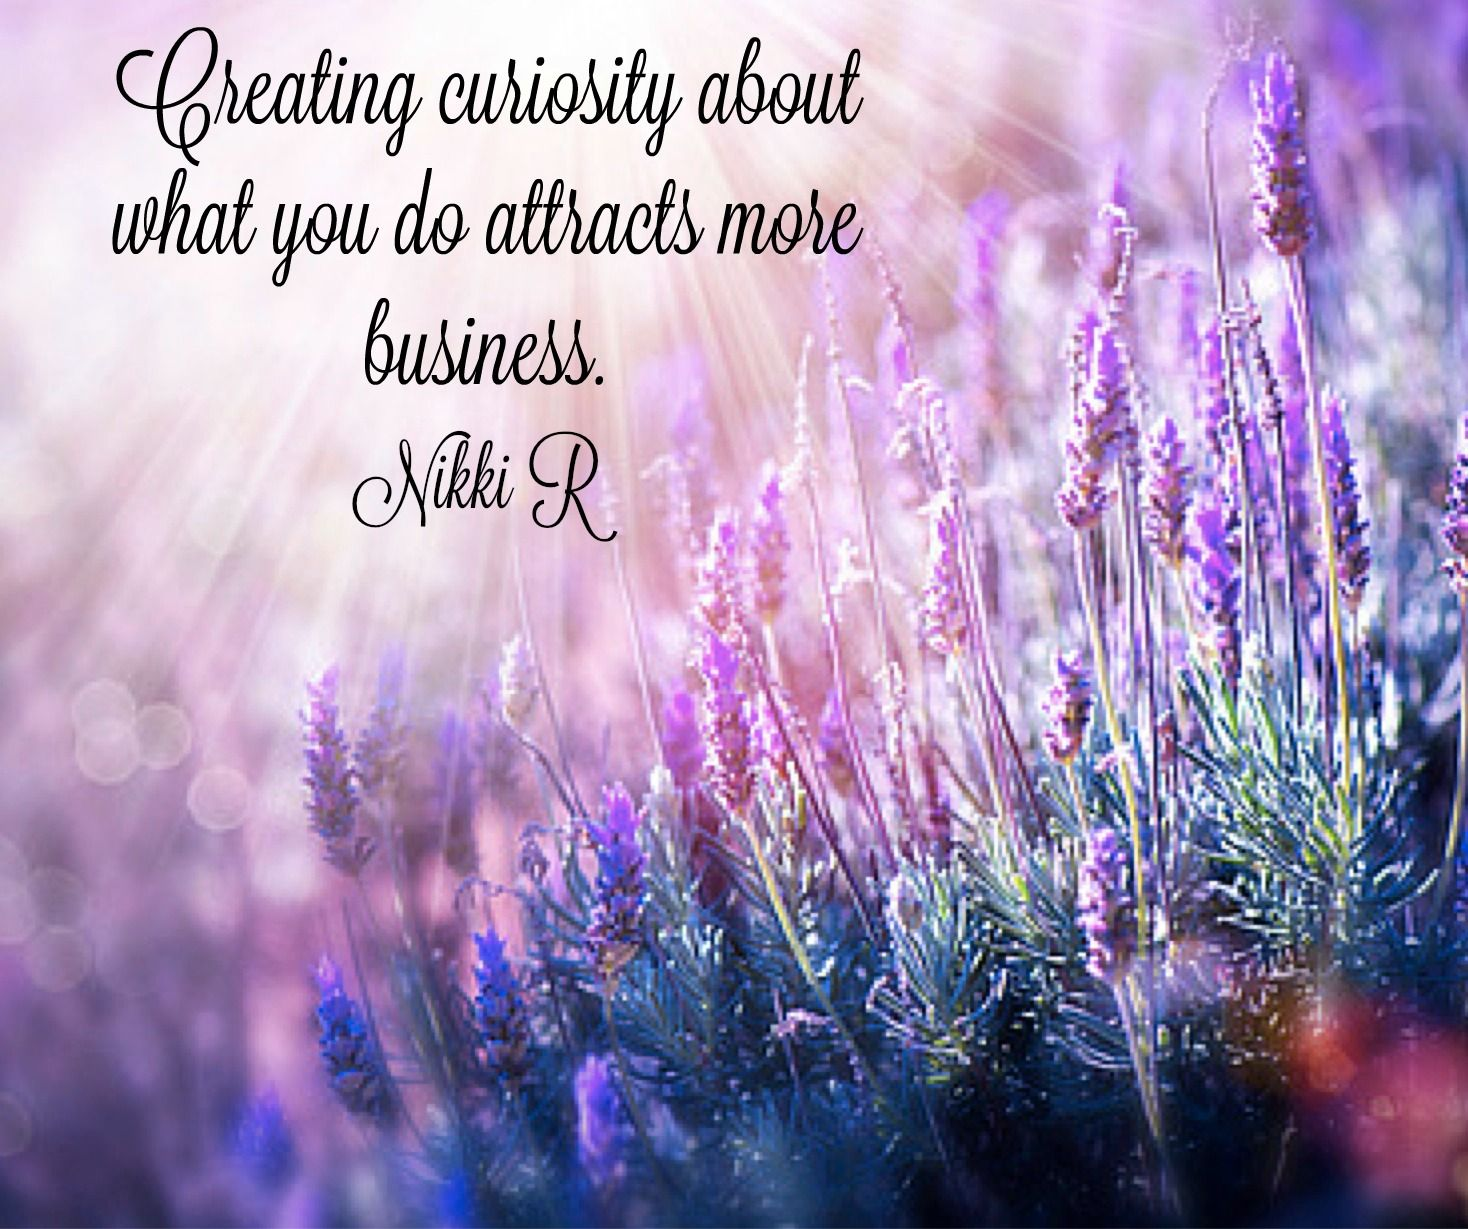 How To Create Curiosity About Your Business